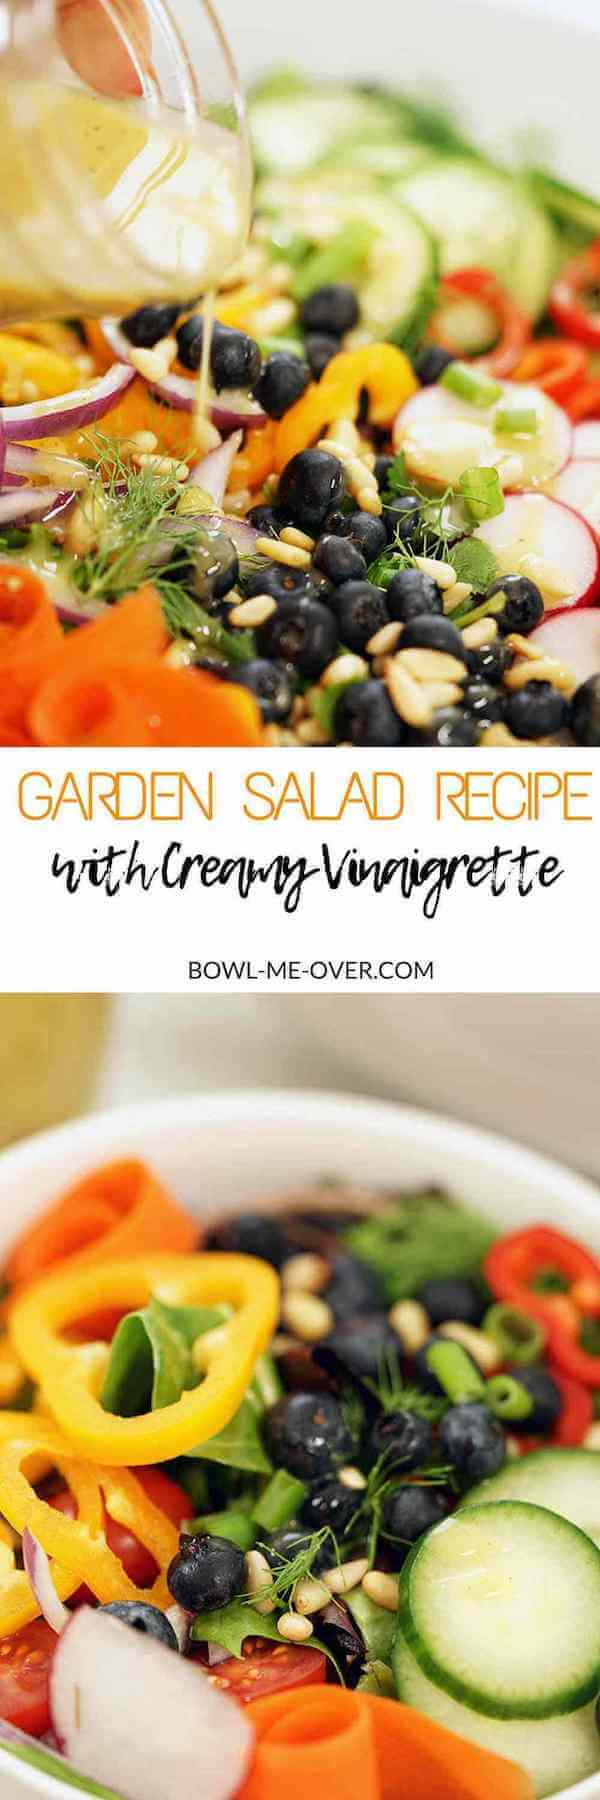 A bright fresh garden salad recipe topped off with a homemade creamy vinaigrette